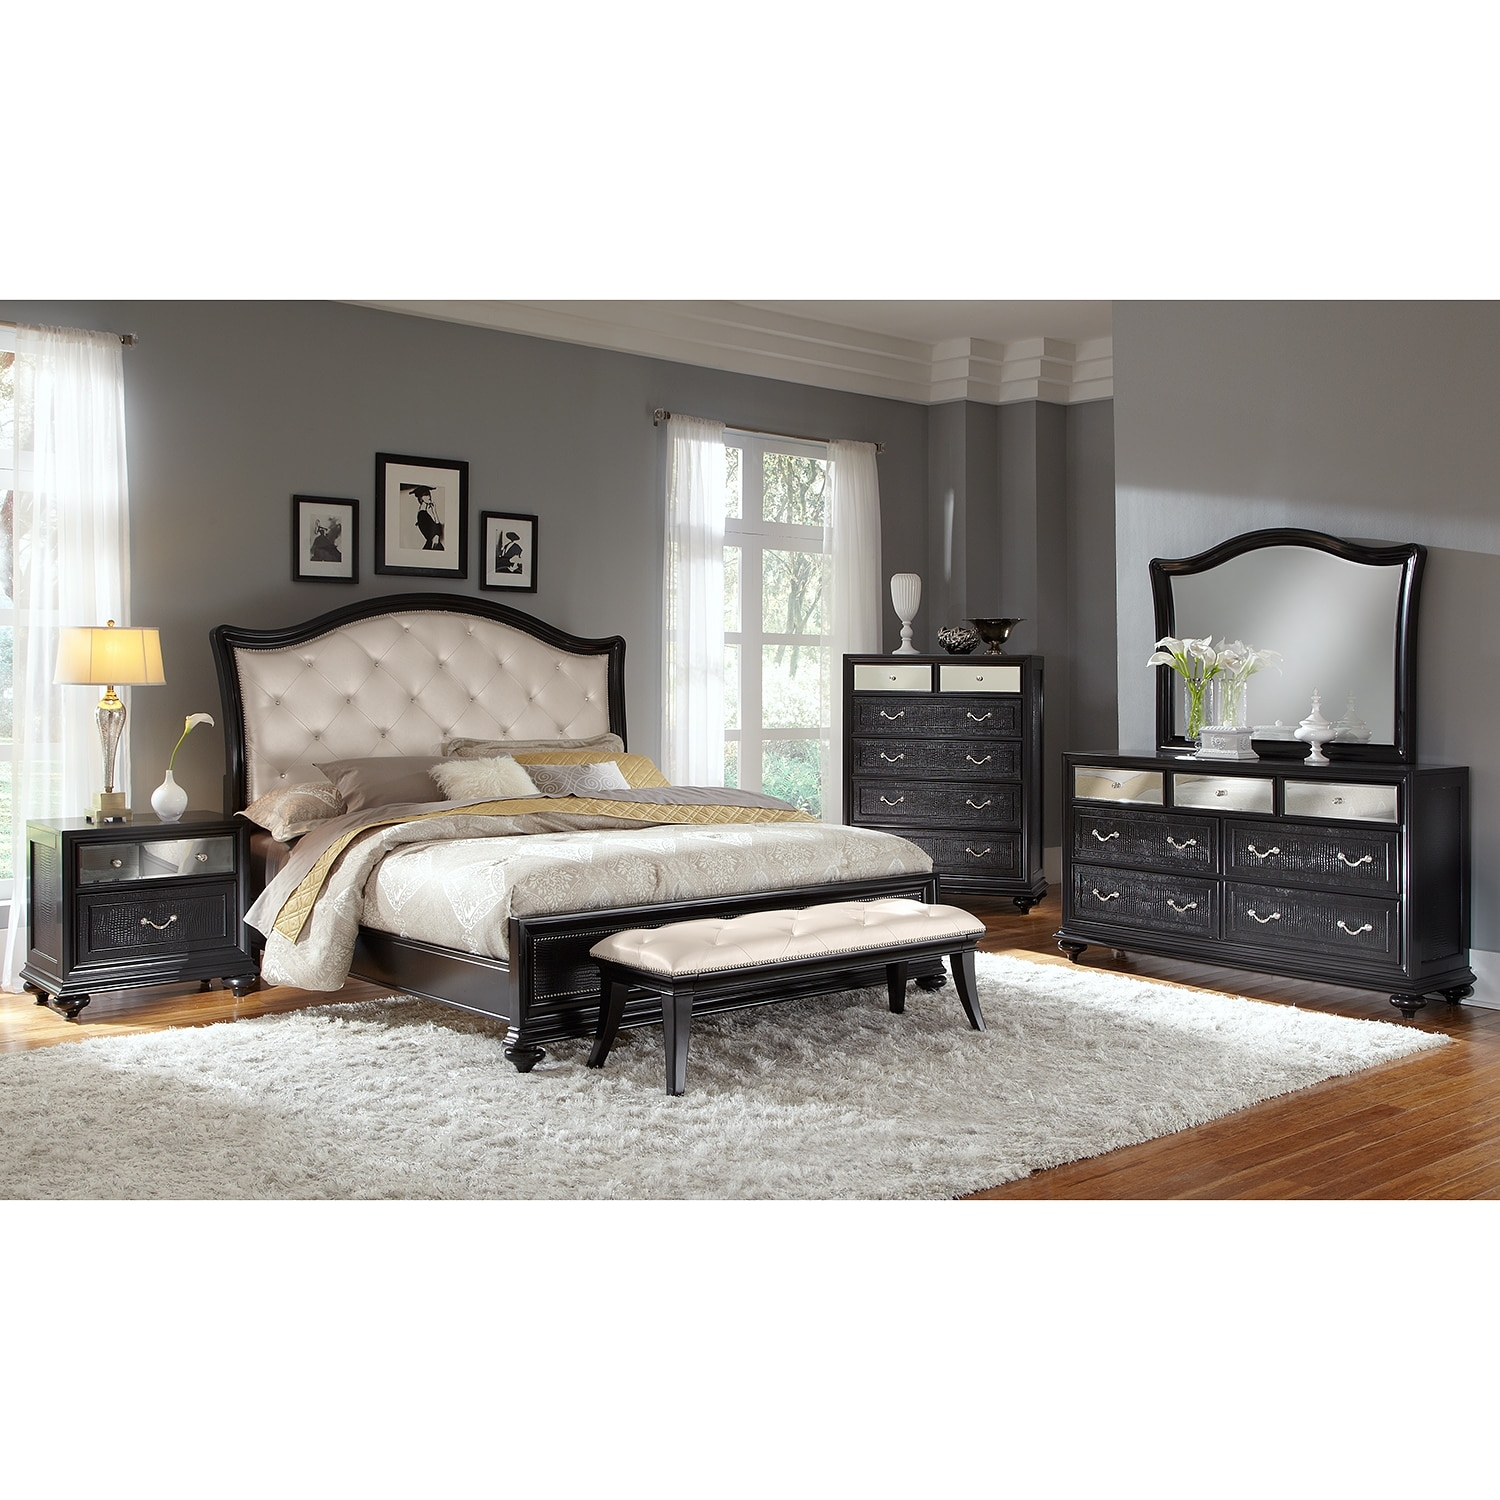 Marilyn queen bed value city furniture for Furniture bedroom furniture